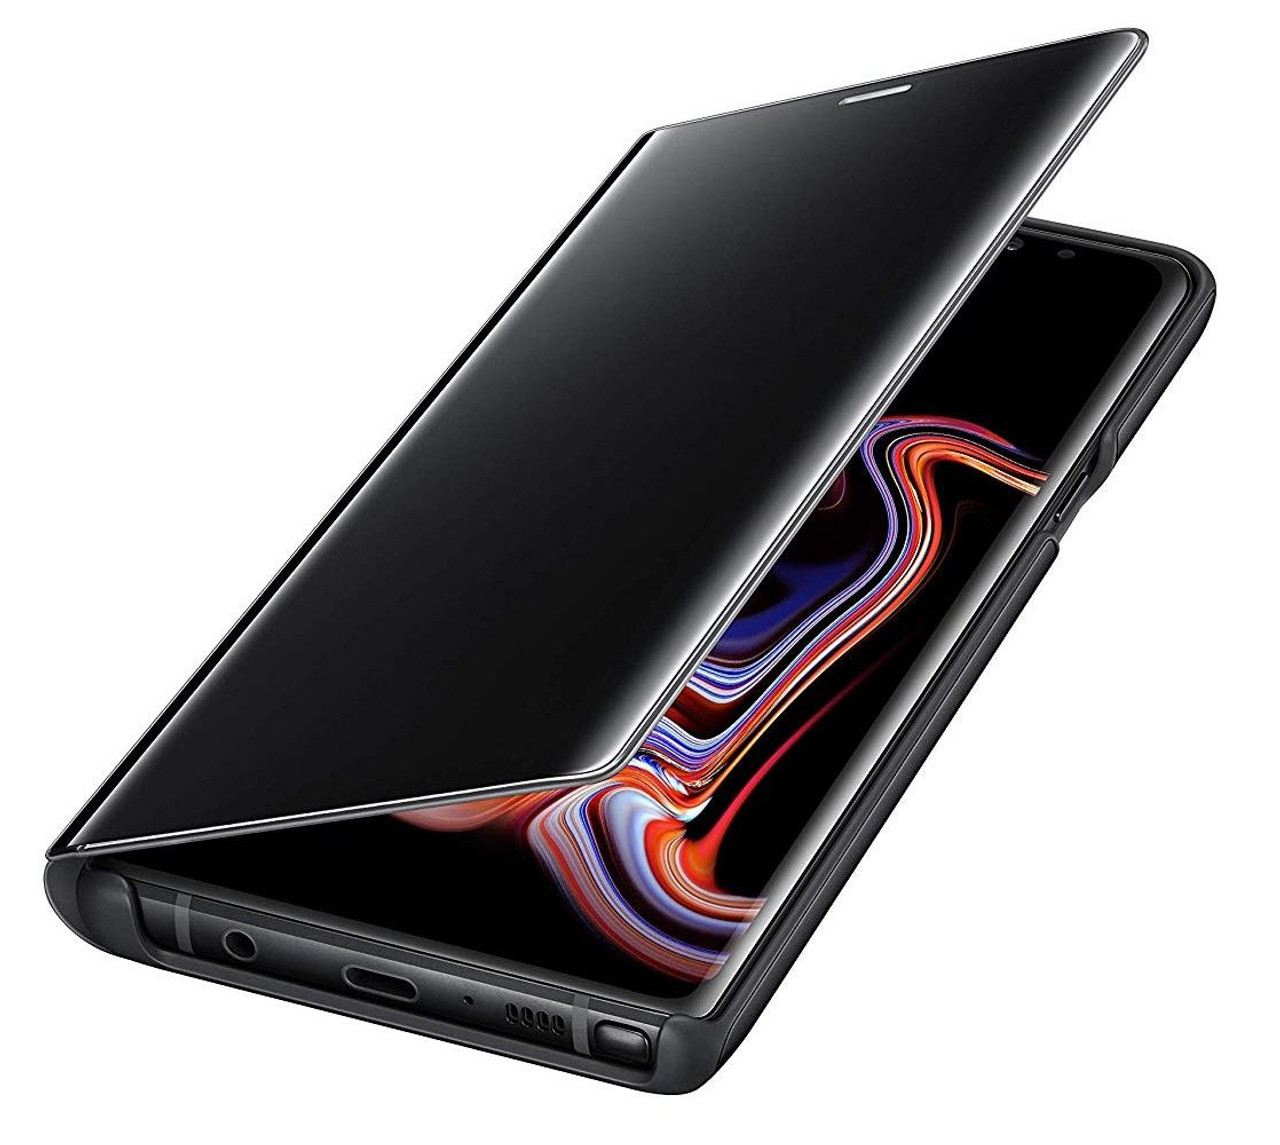 huge selection of f3b01 25f8e New Genuine Samsung Galaxy Note 9 Black Clear View Flip Case Cover Wallet  Stand